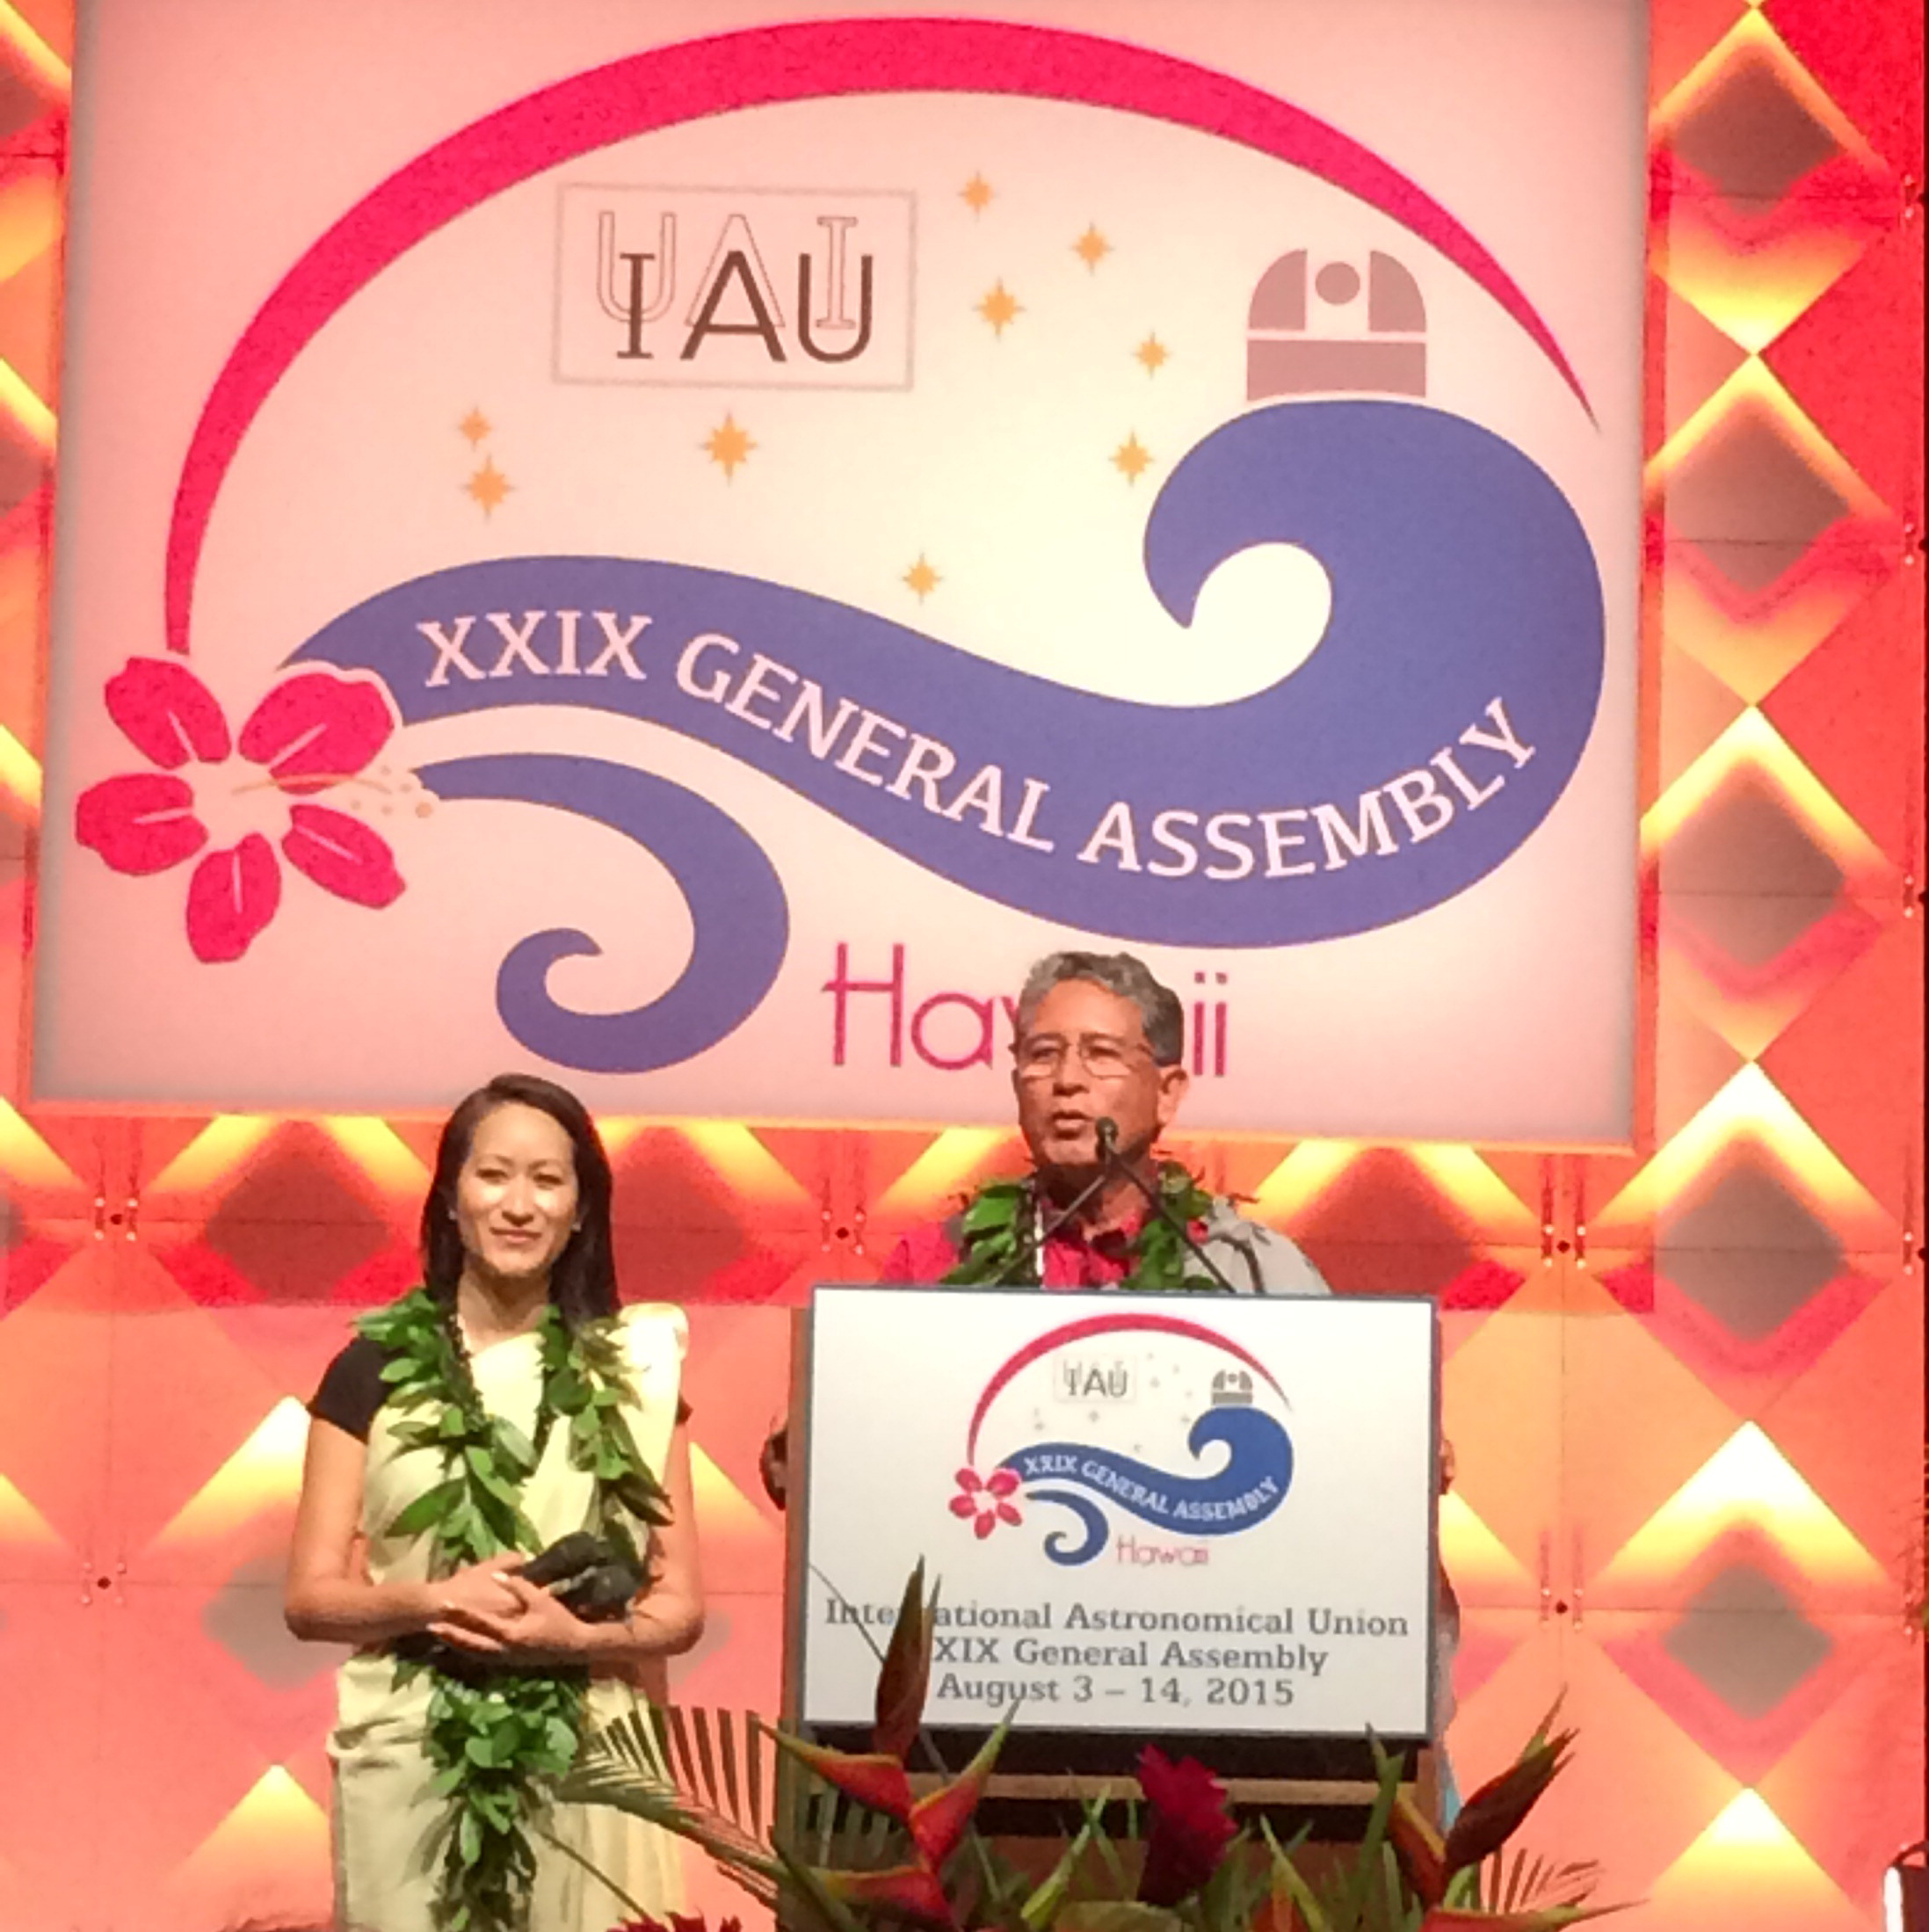 David Ige, Governor of Hawaii, at the IAU Opening Ceremony